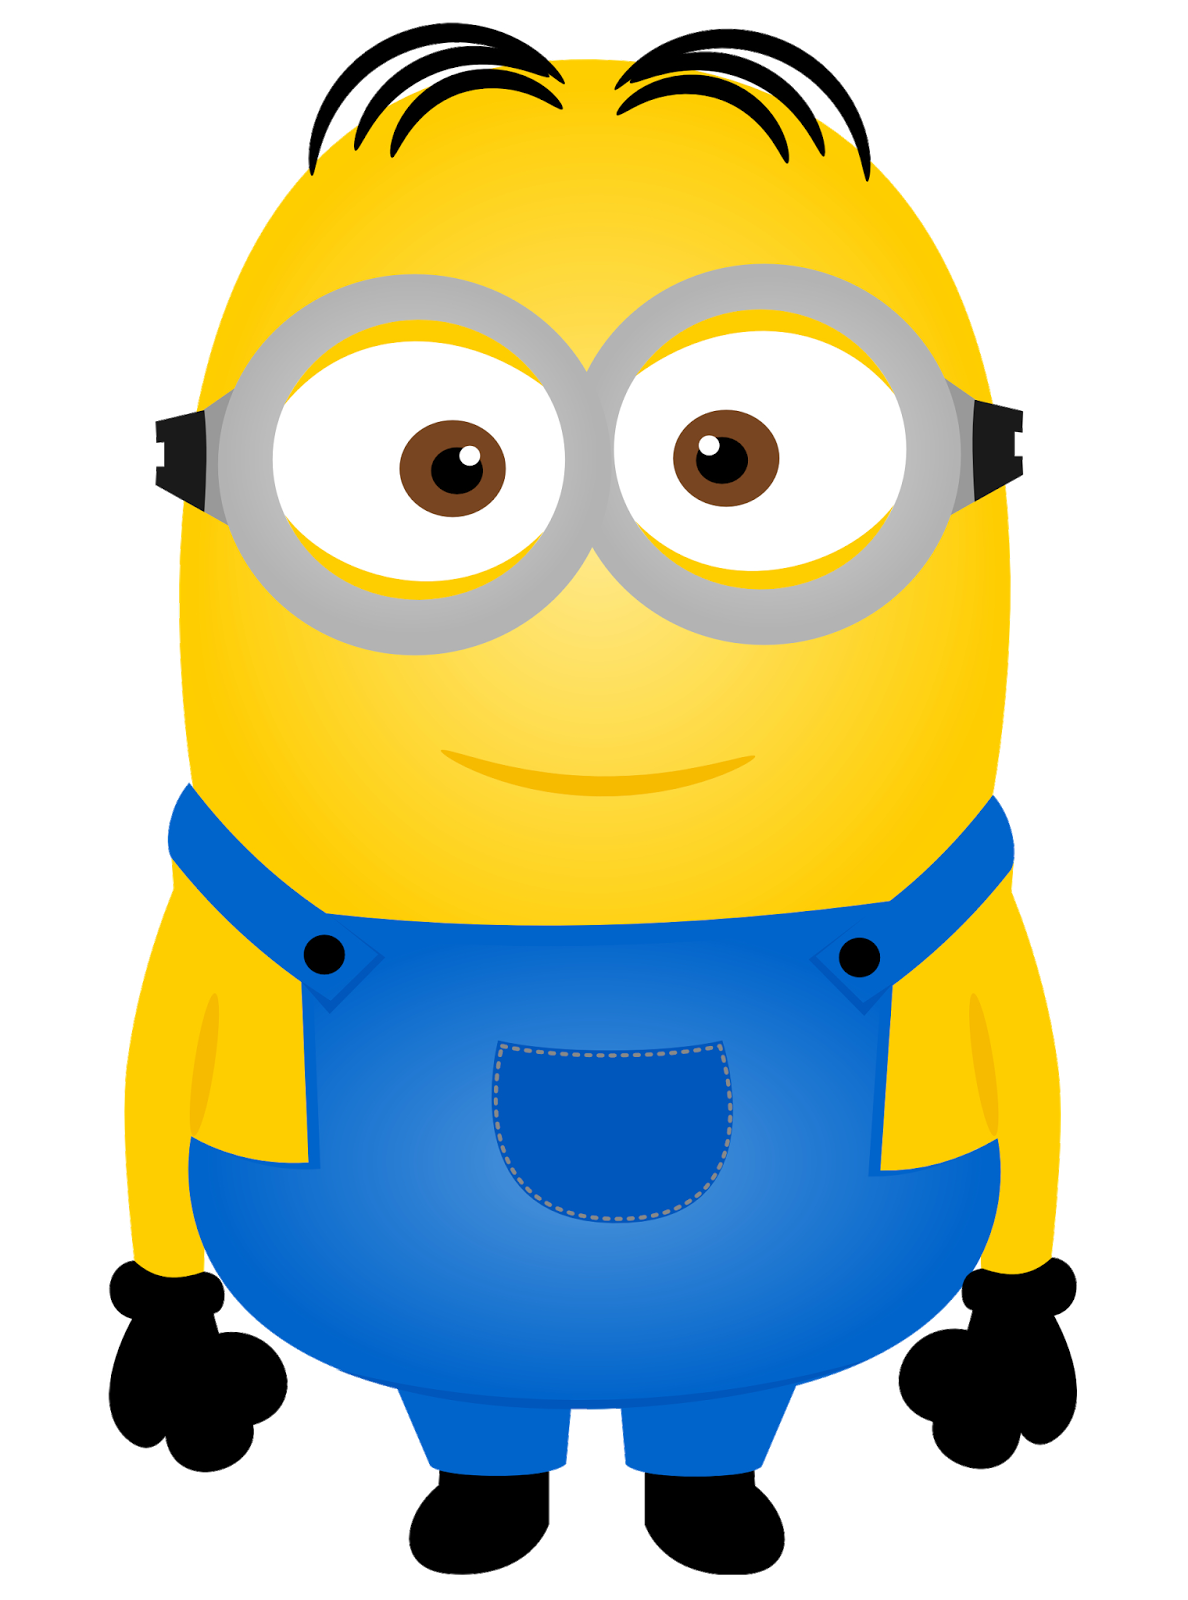 Minions Superheroes Clip Art. - Oh My Fiesta! for Geeks